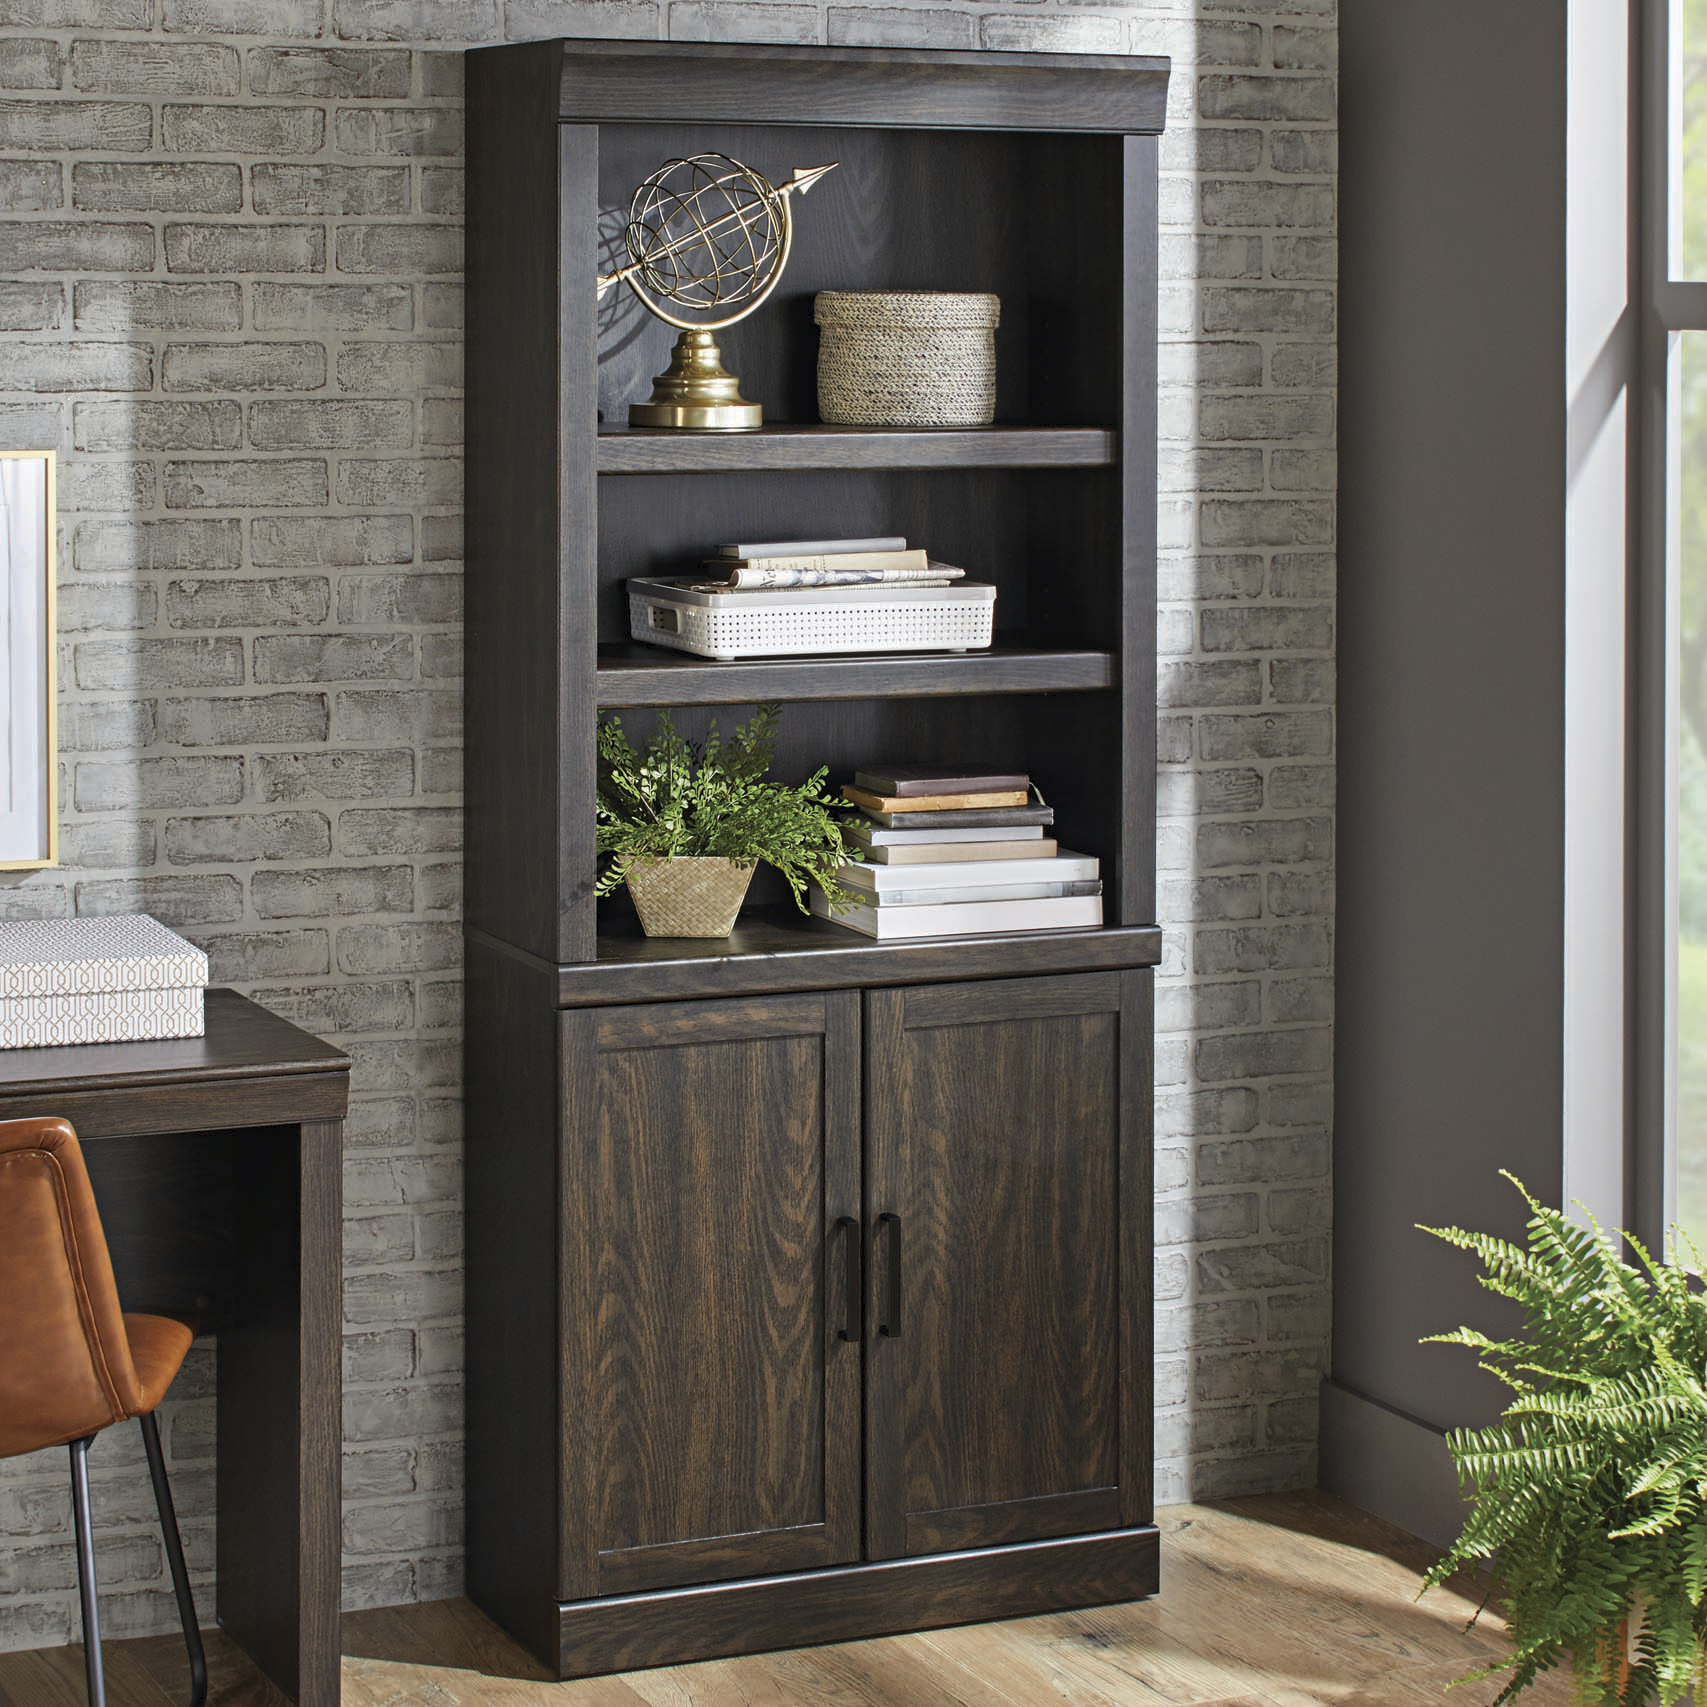 Better Homes & Gardens Glendale 5 Shelf Bookcase with Doors, Dark Oak Finish